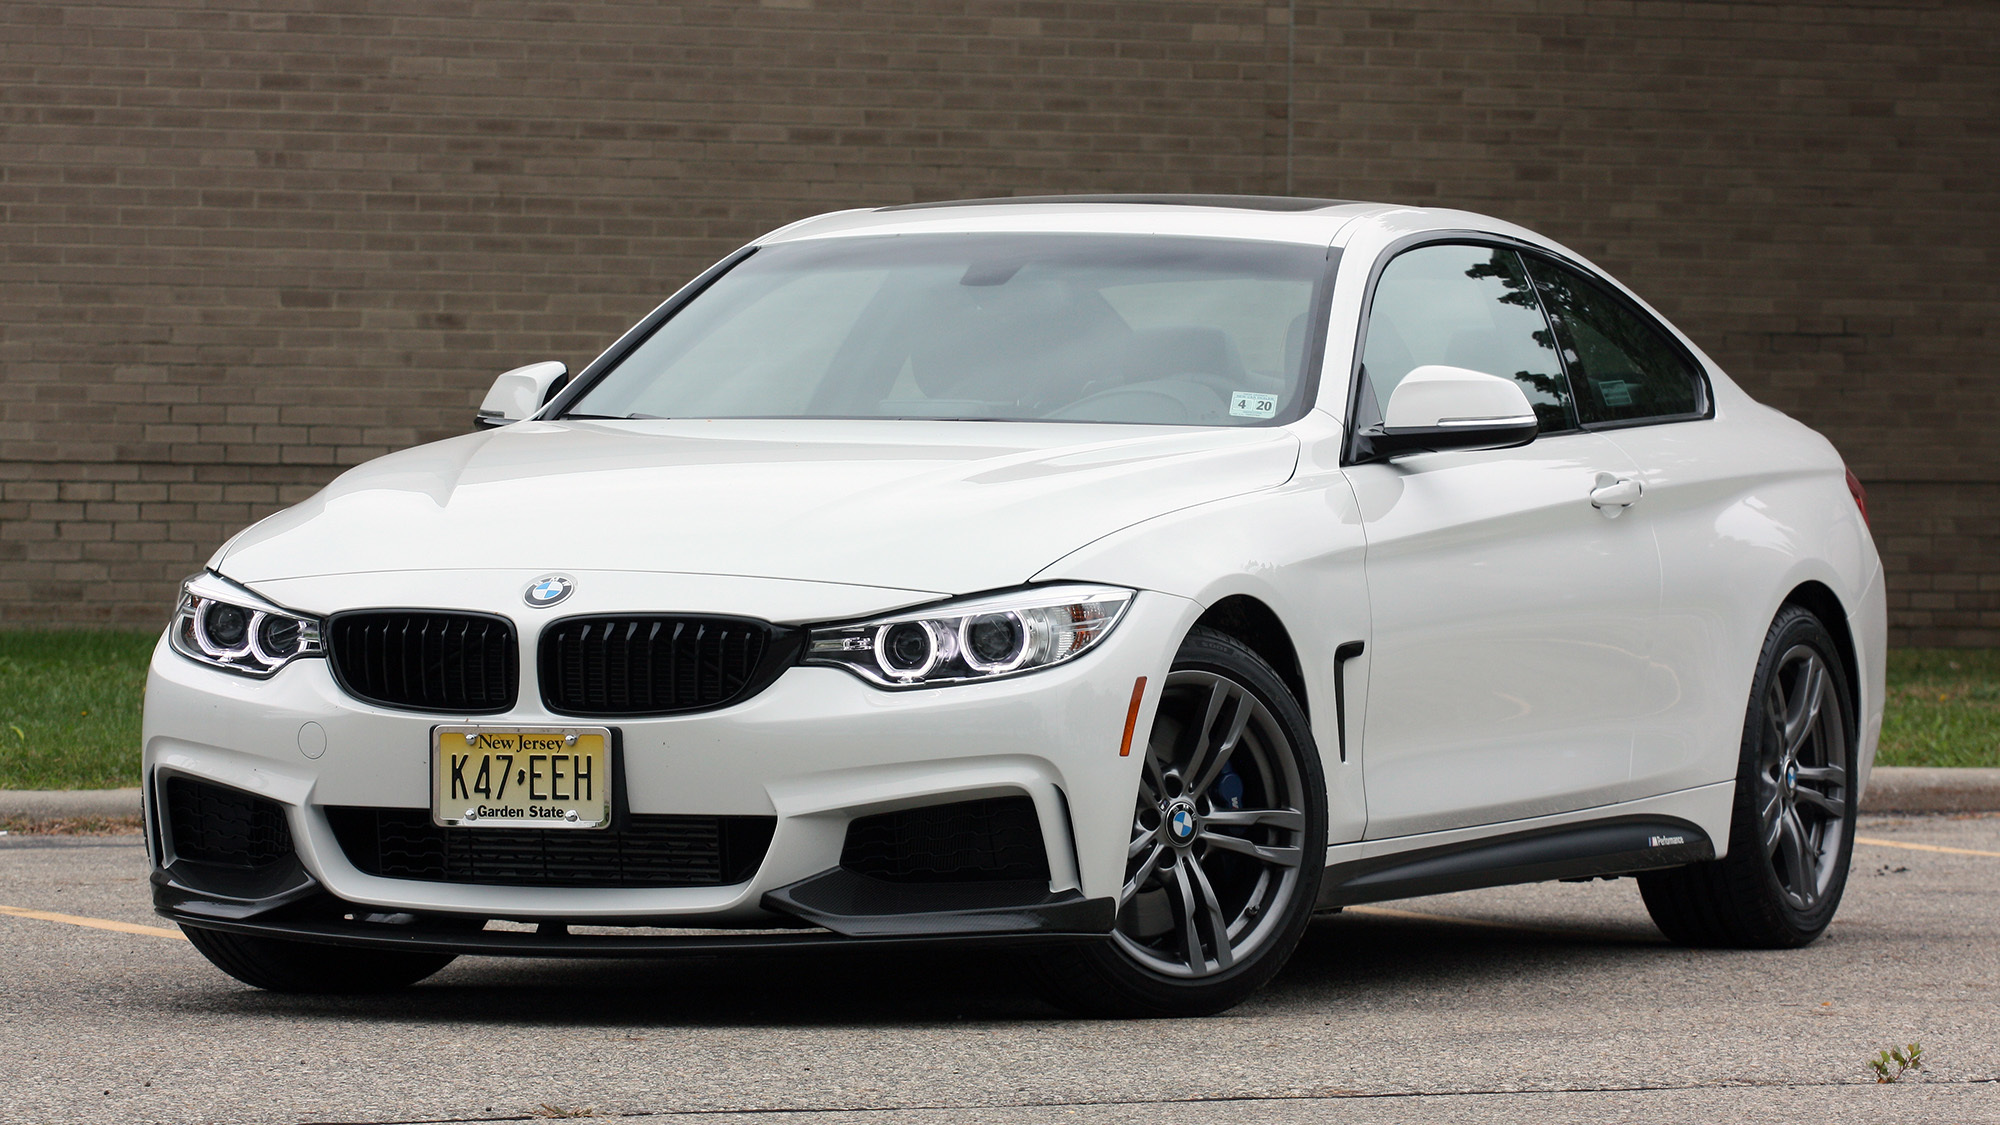 Certified Pre Owned BMW >> 2016 BMW 435i ZHP Edition Coupe Quick Spin [w/video] | Autoblog